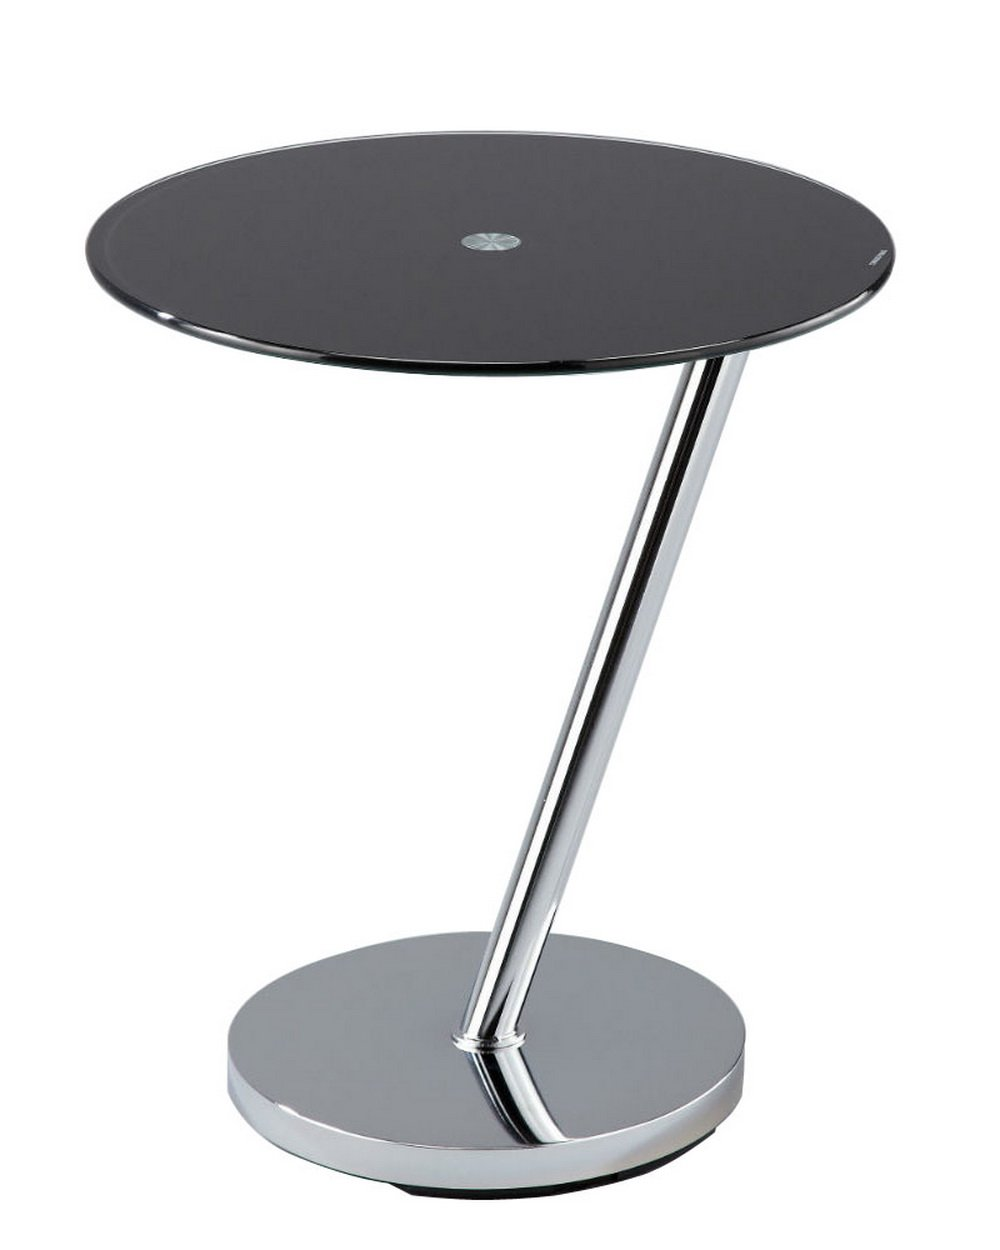 ASPECT Round Glass Side/End/Coffee Table-Curve Round Side Table -Black, Metal GT10B